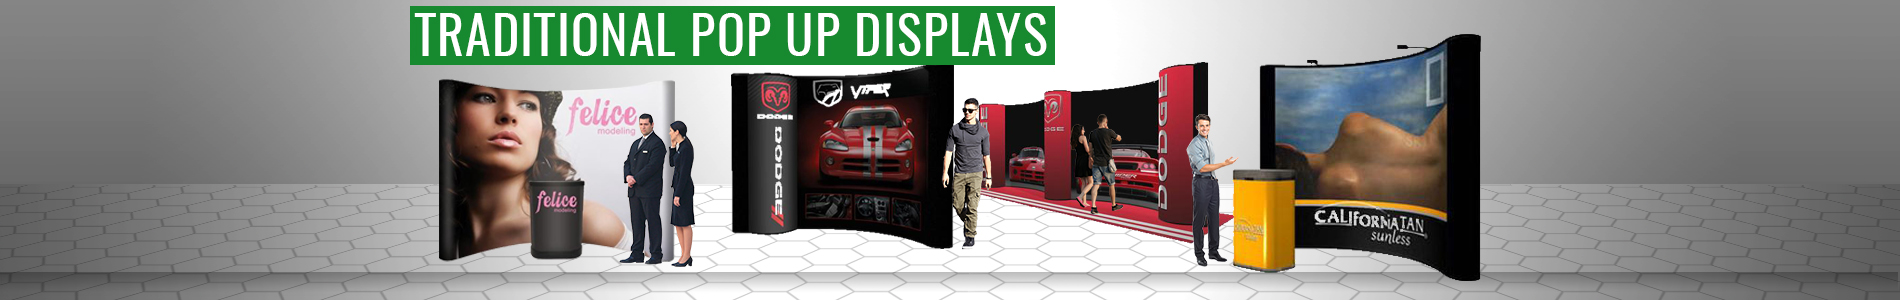 pop up displays traditional